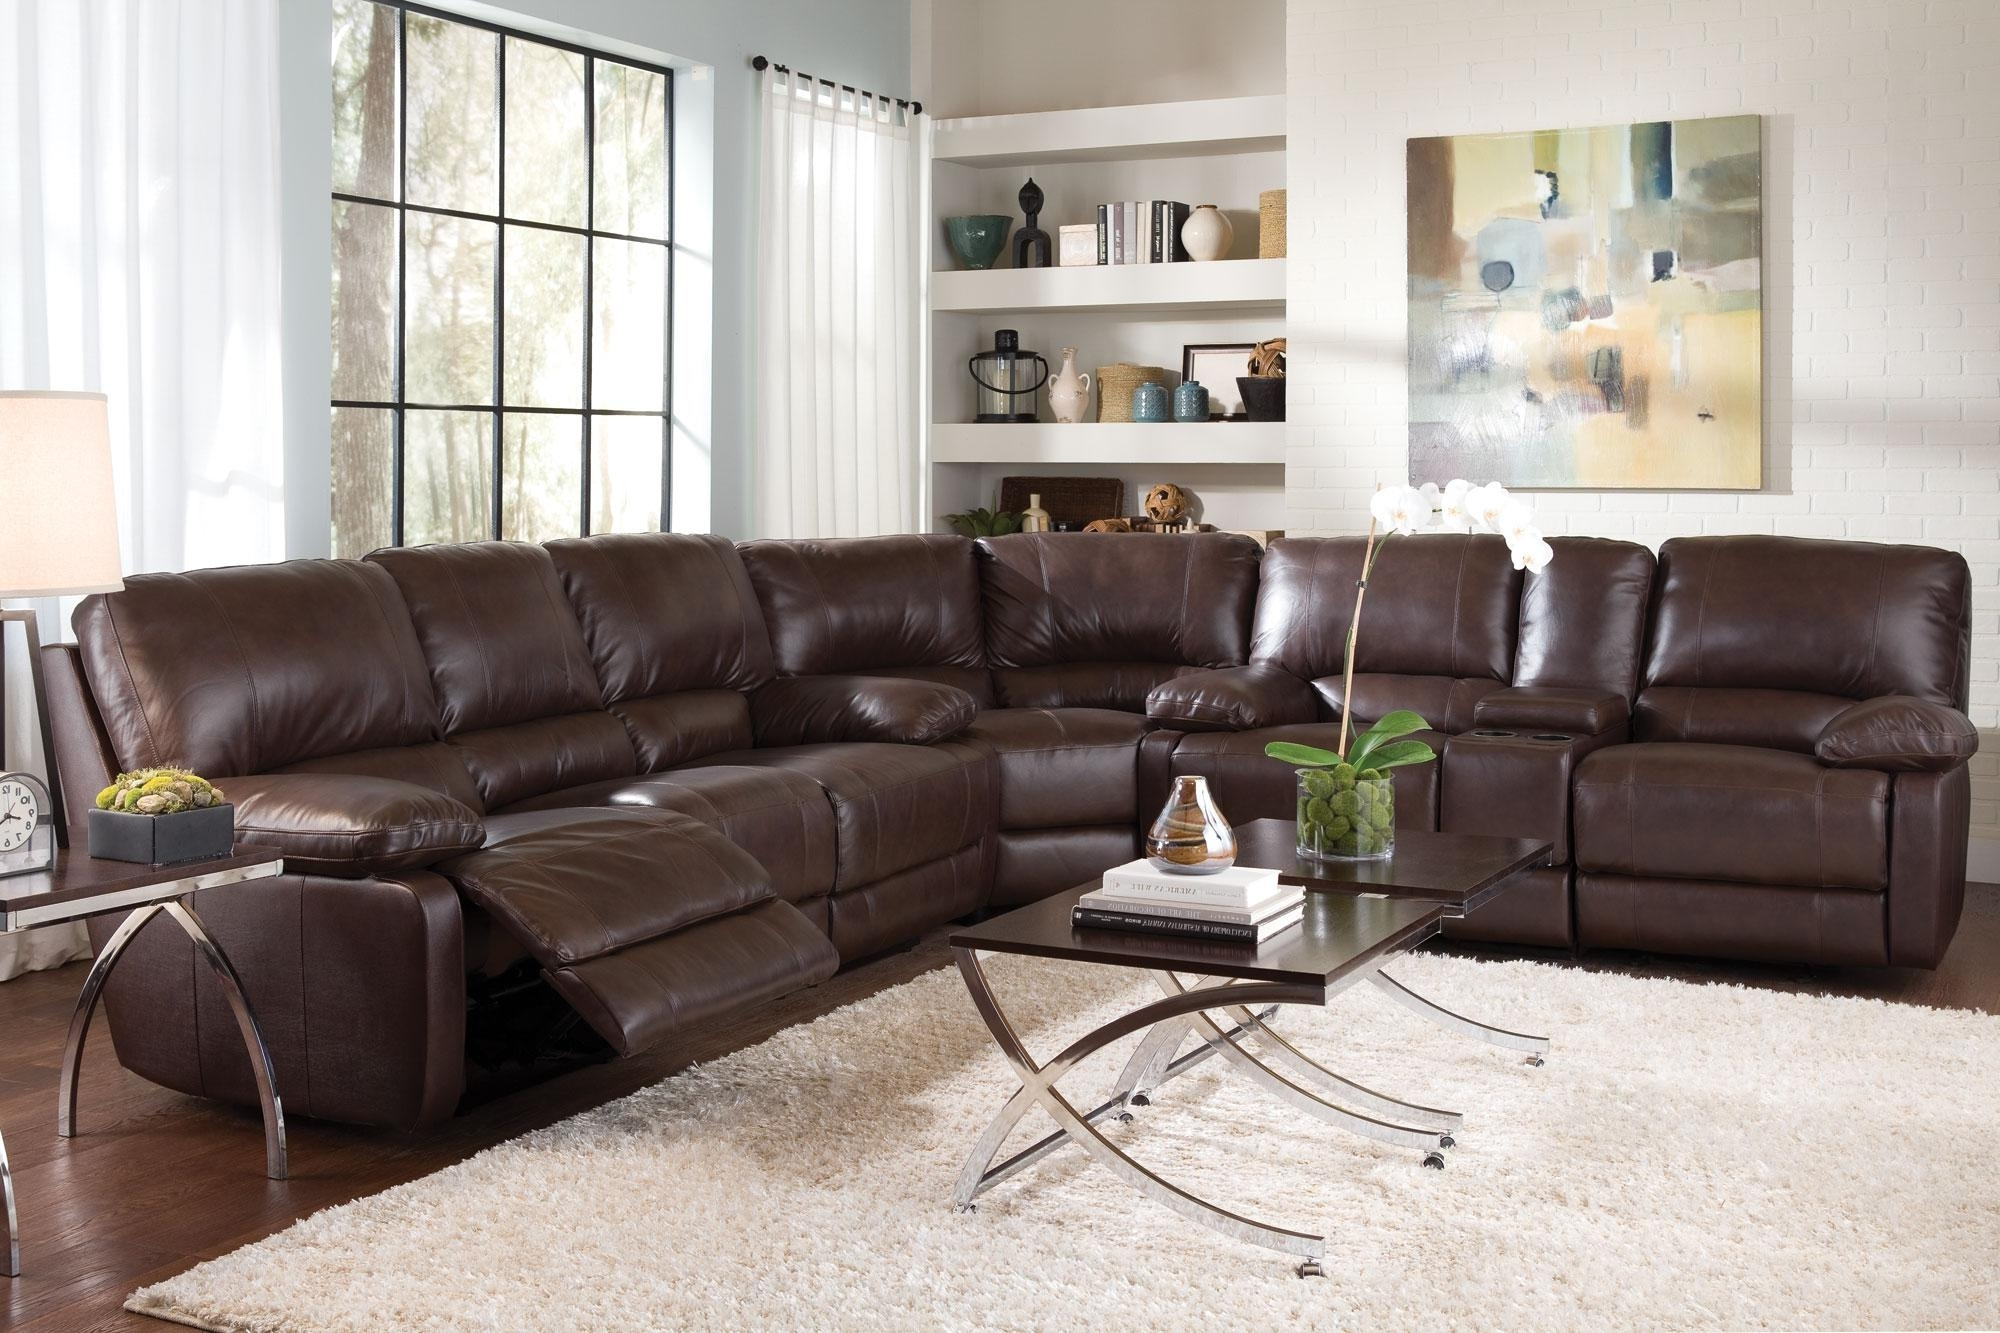 C600021Sset – Top Grain Leather Sectional Buy Itthe Piece Or For Newest Leather Motion Sectional Sofas (View 2 of 20)